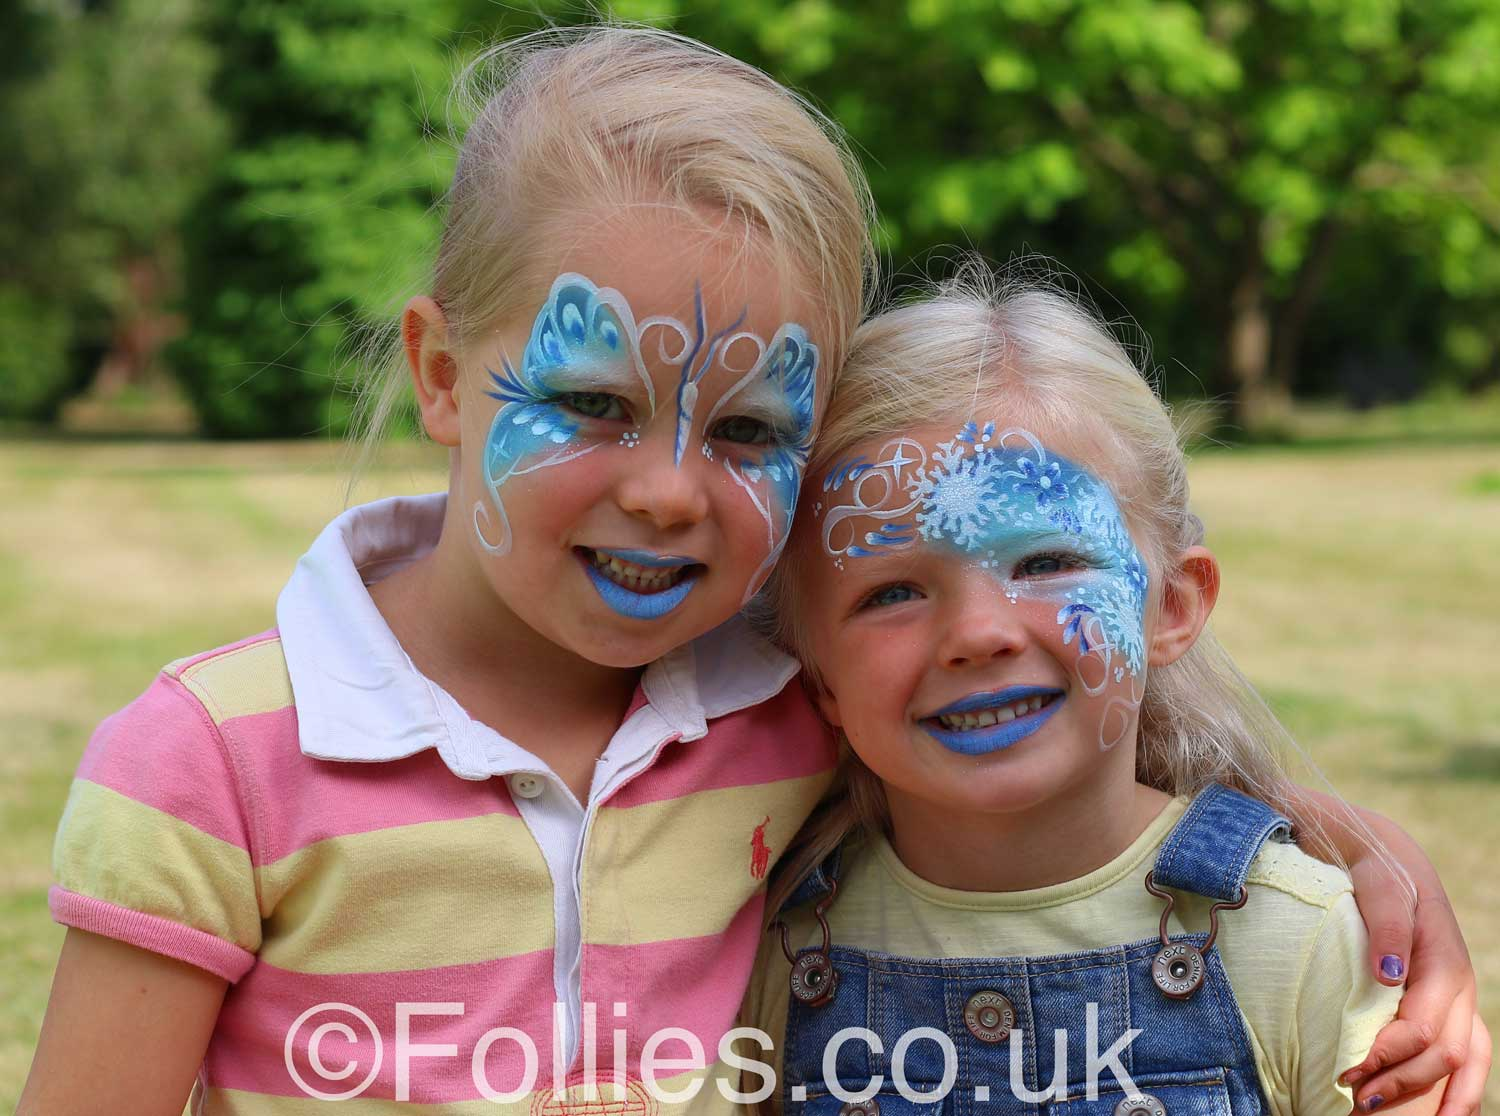 Face Paint Butterflies| Follies Face & Body Art